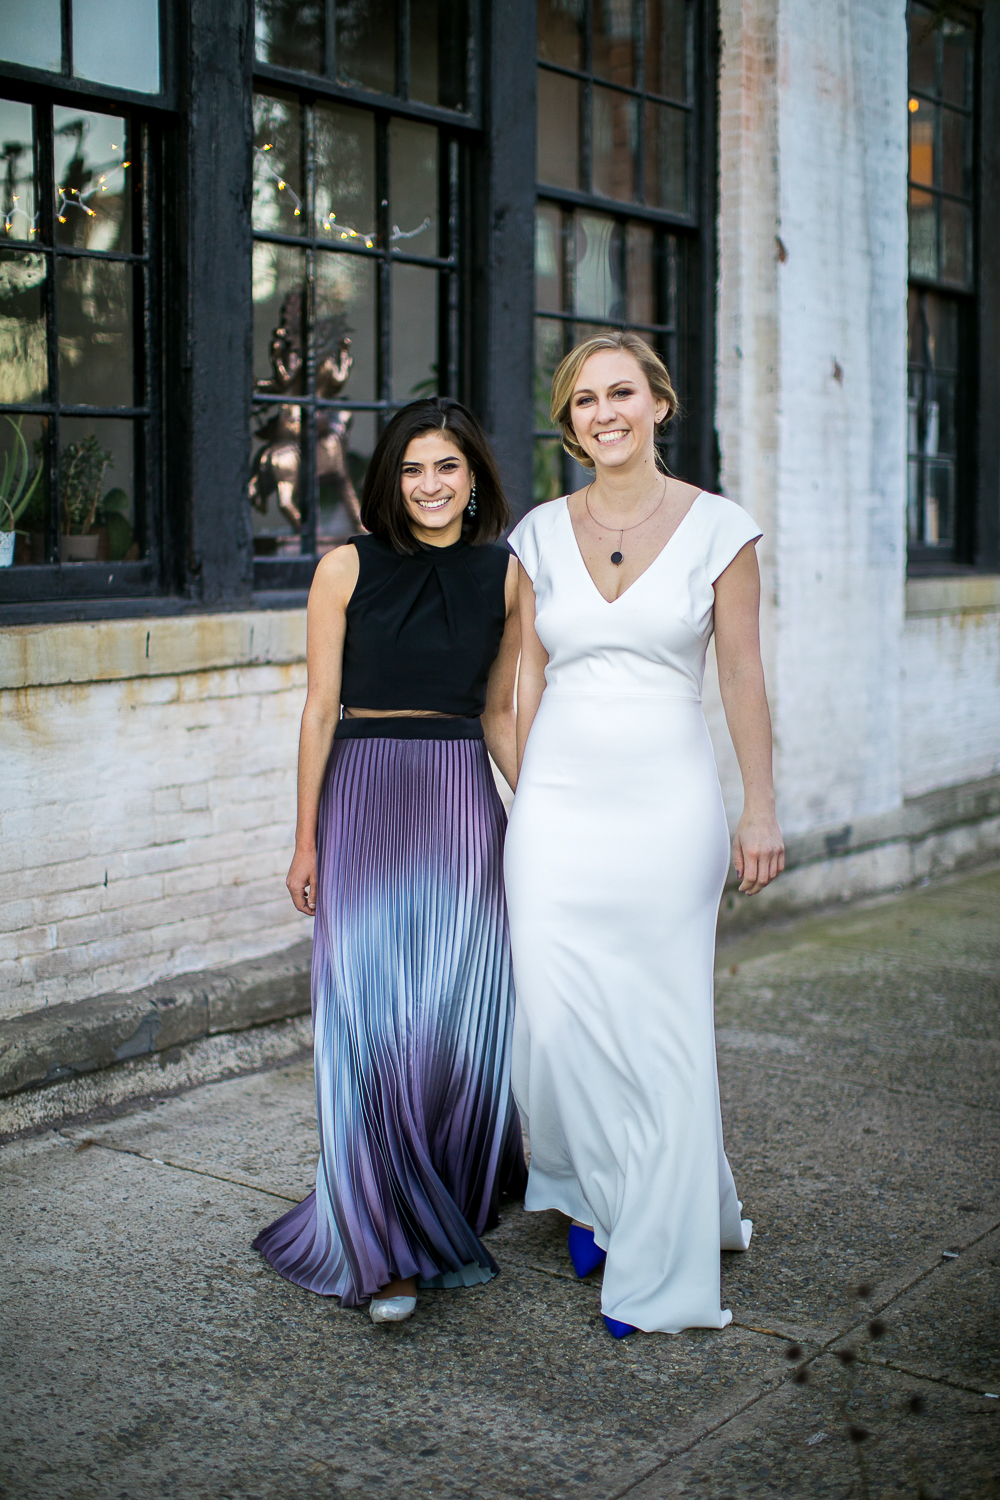 Portrait of brides on their wedding day | 26 Bridge Wedding Photos | Lesbian Brooklyn Wedding | Kristin and Marisa's Wedding